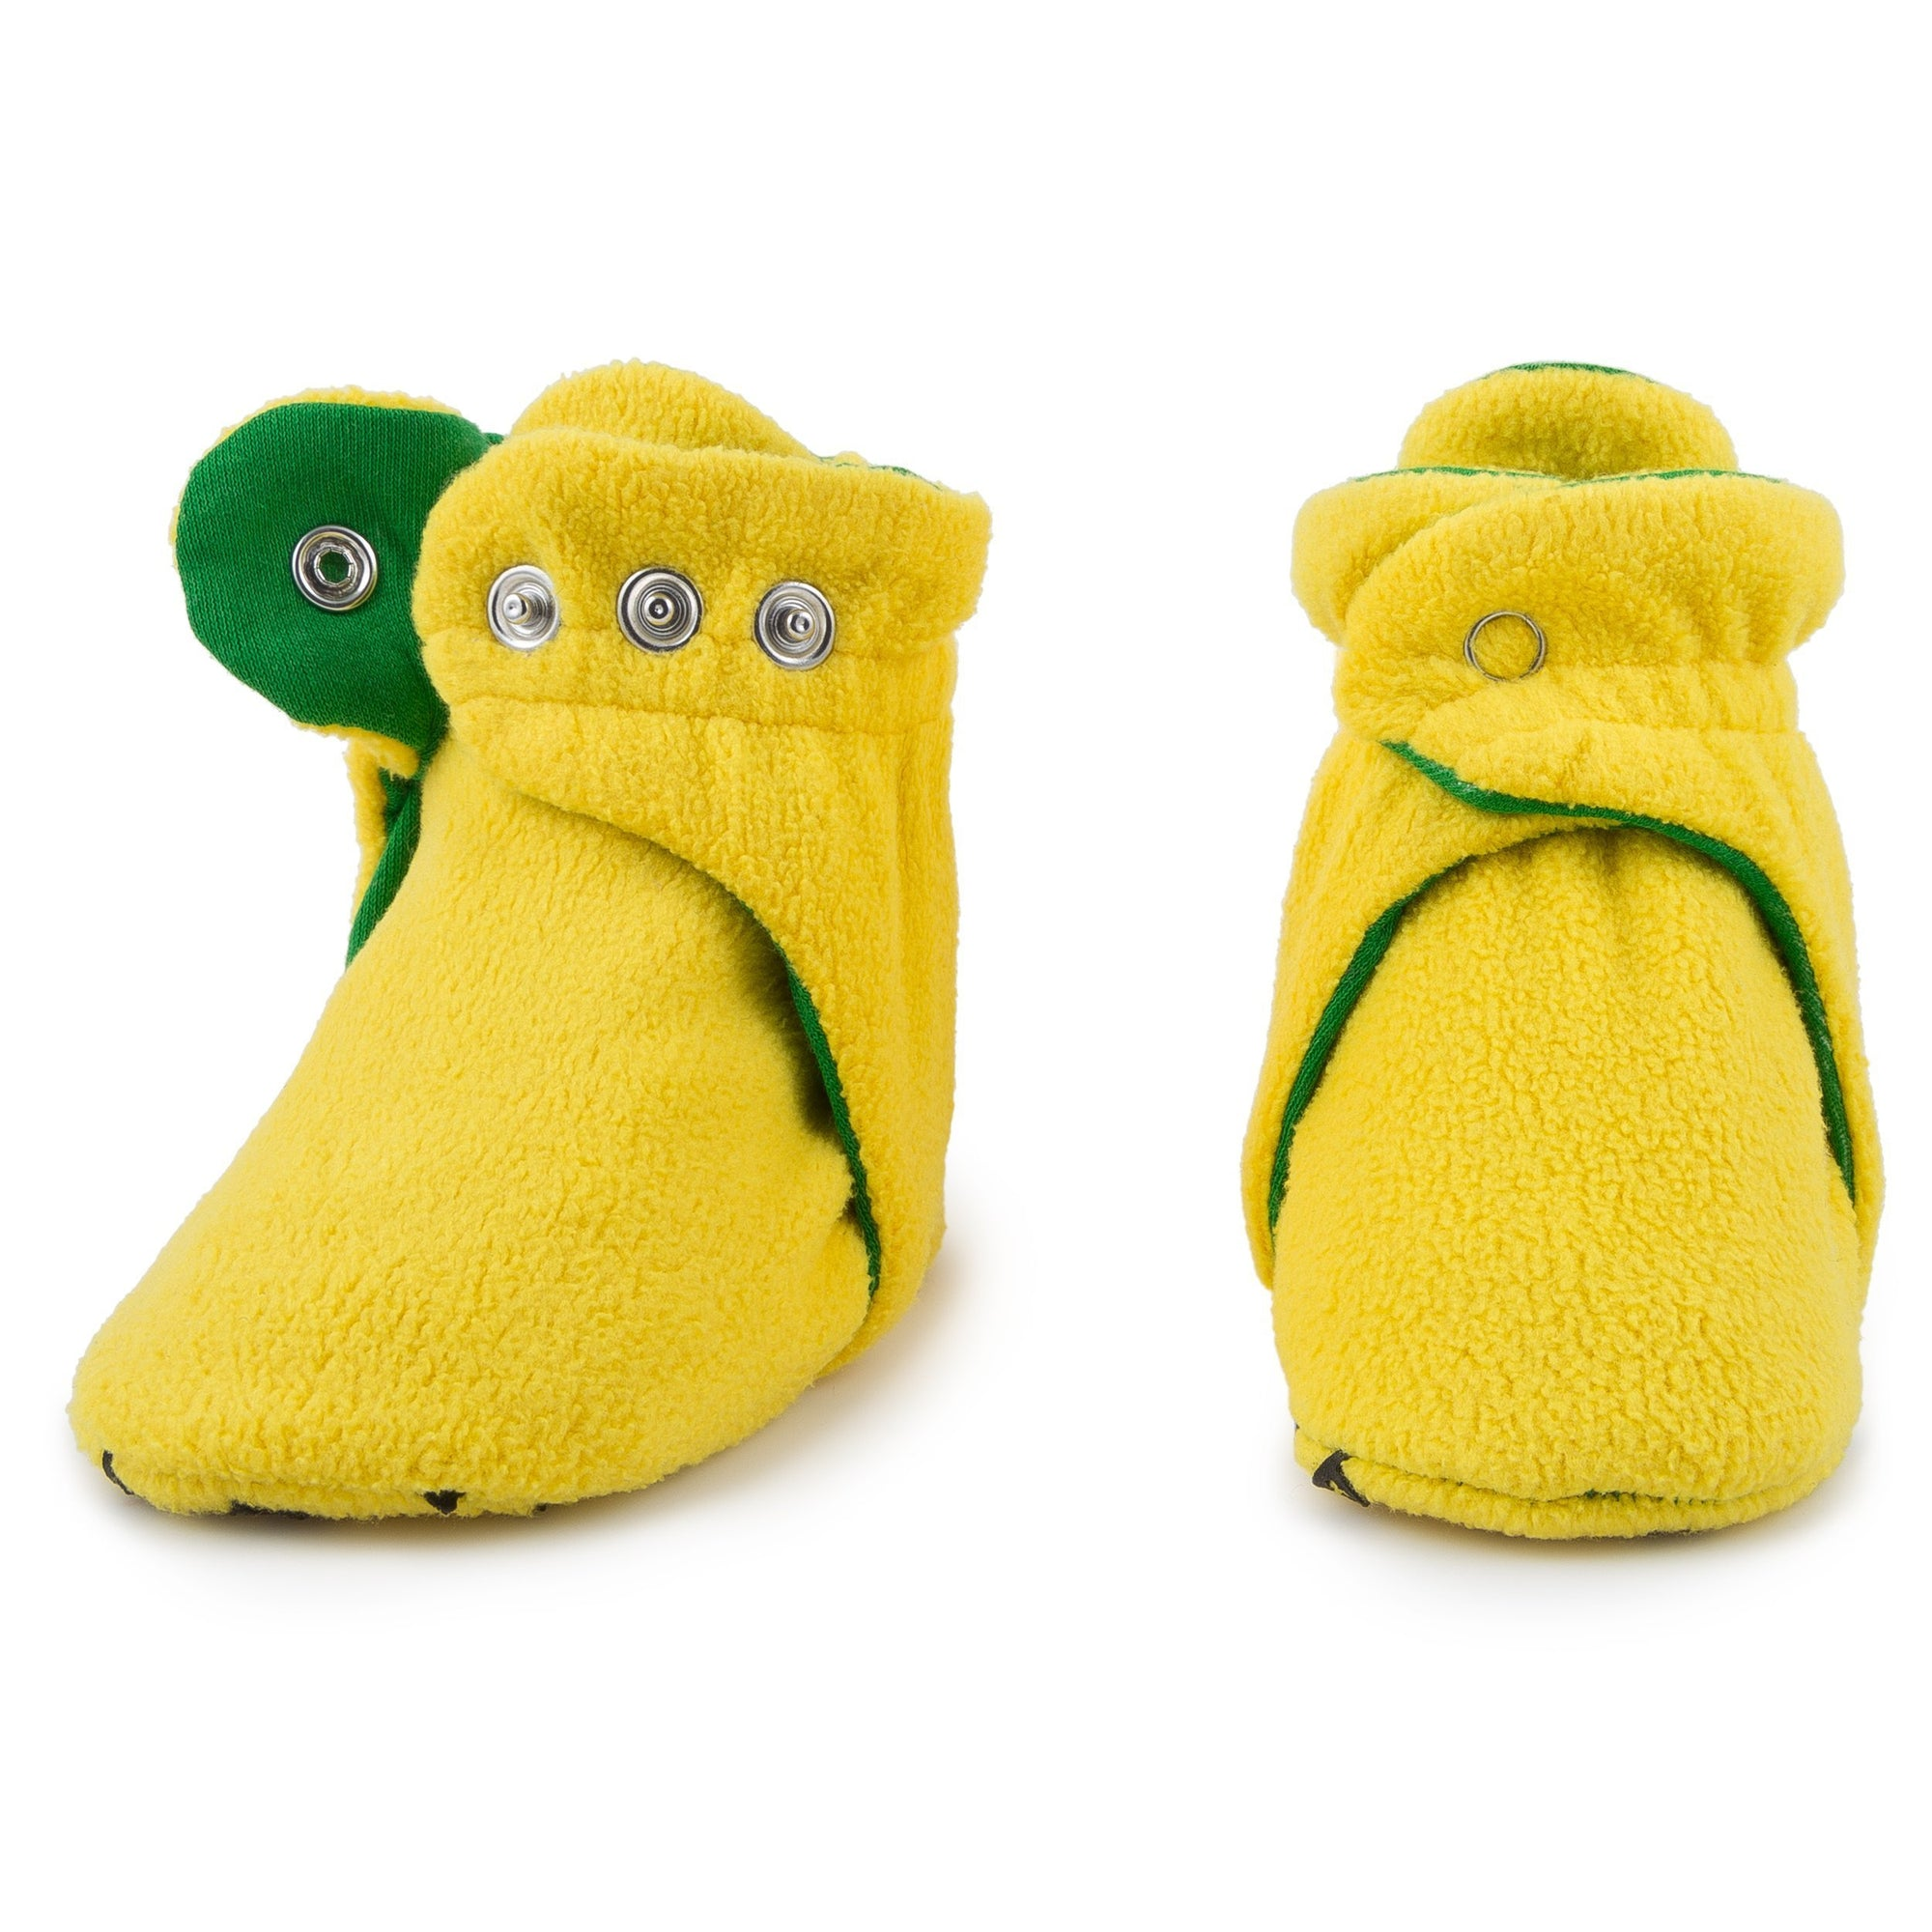 b17f5fe84da Lemon Lime Baby Booties